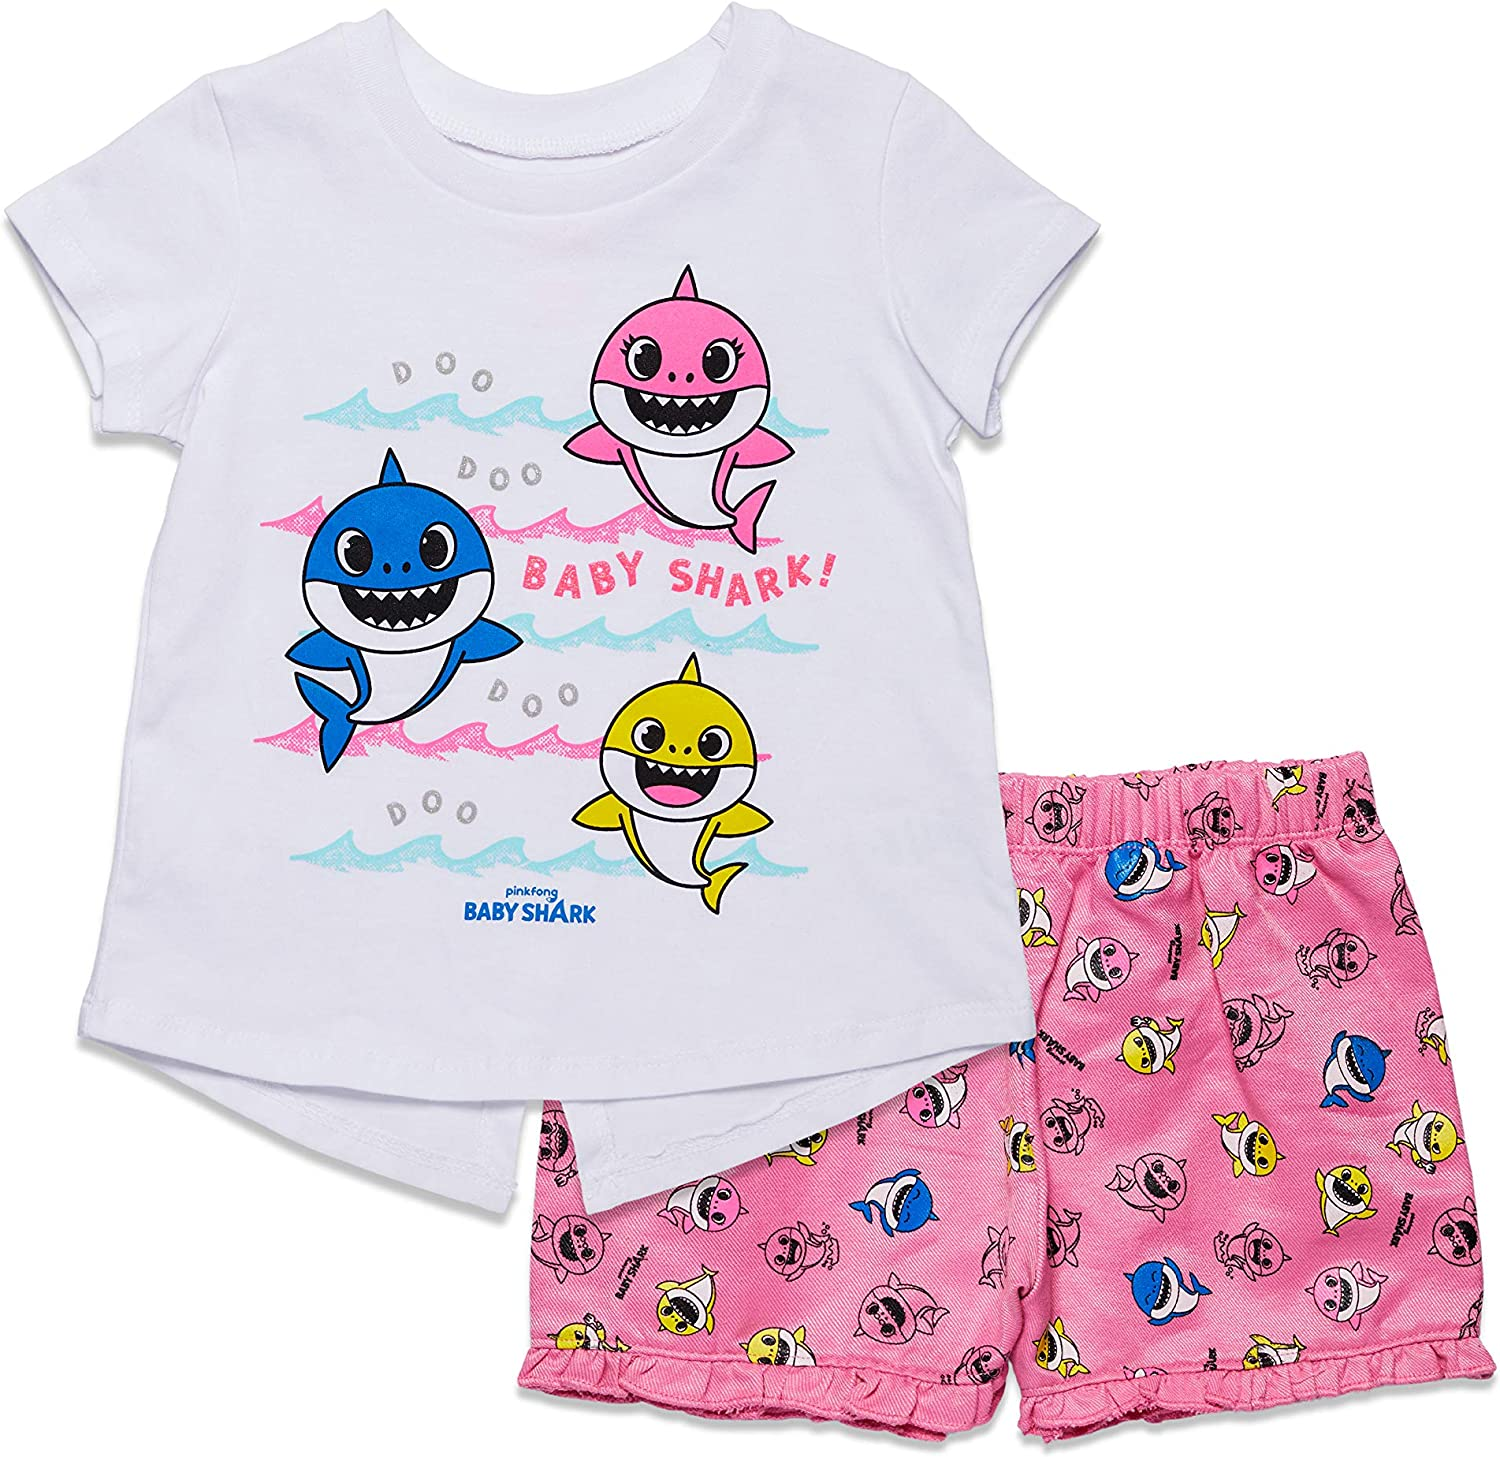 Pinkfong Baby Shark Girls Short Sleeve T-Shirt & Shorts Set